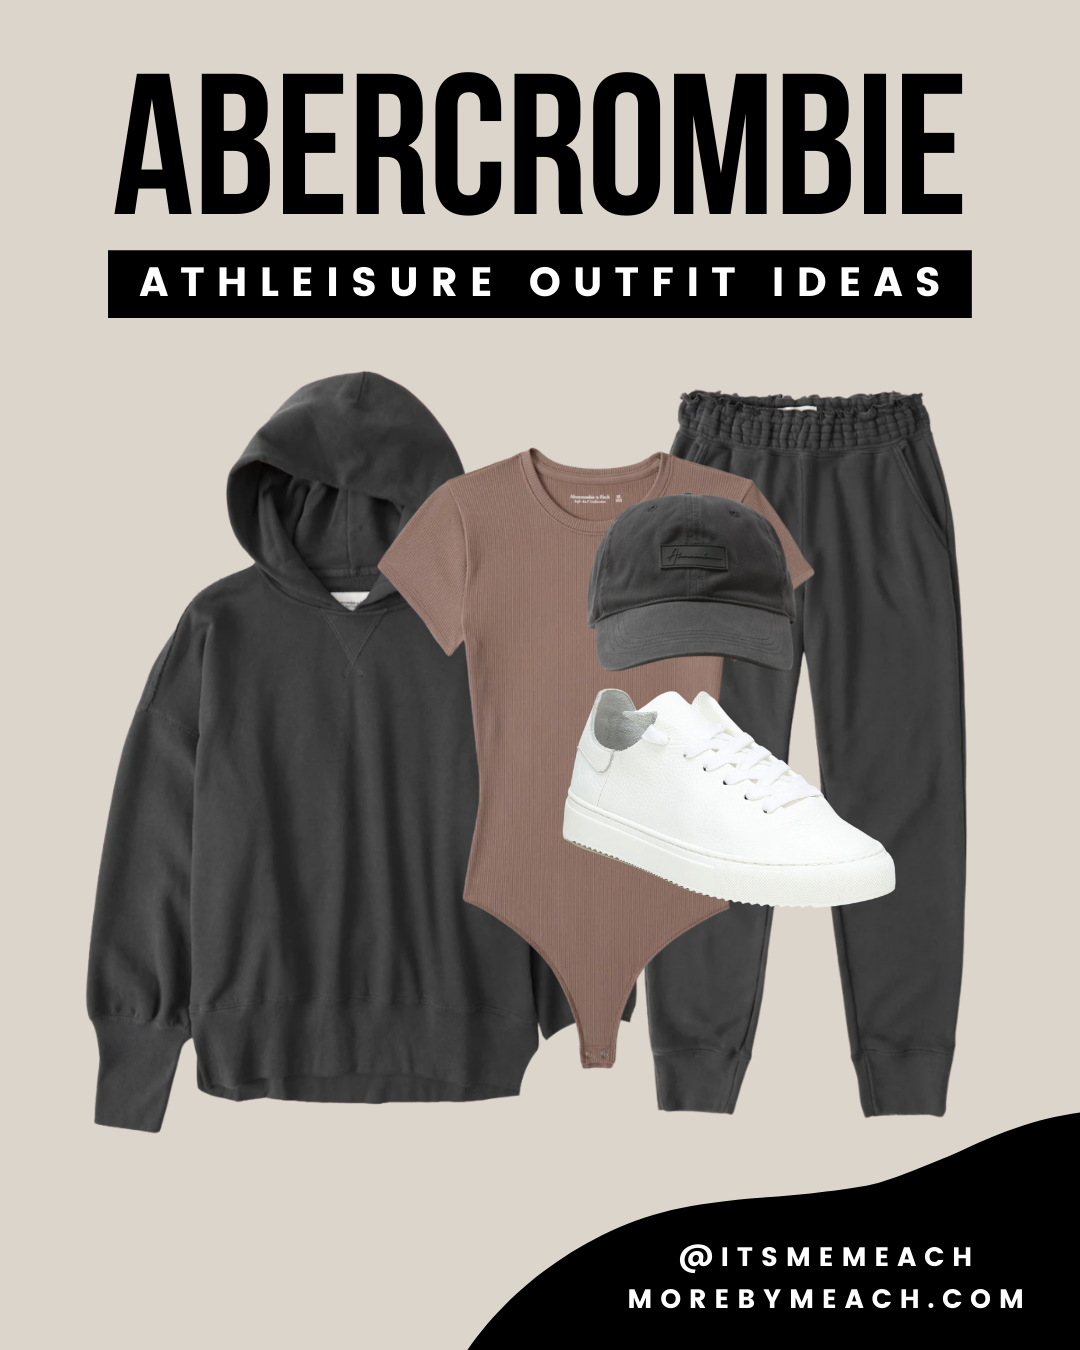 A cute sweatpants outfit 2021 from Abercrombie and Fitch.